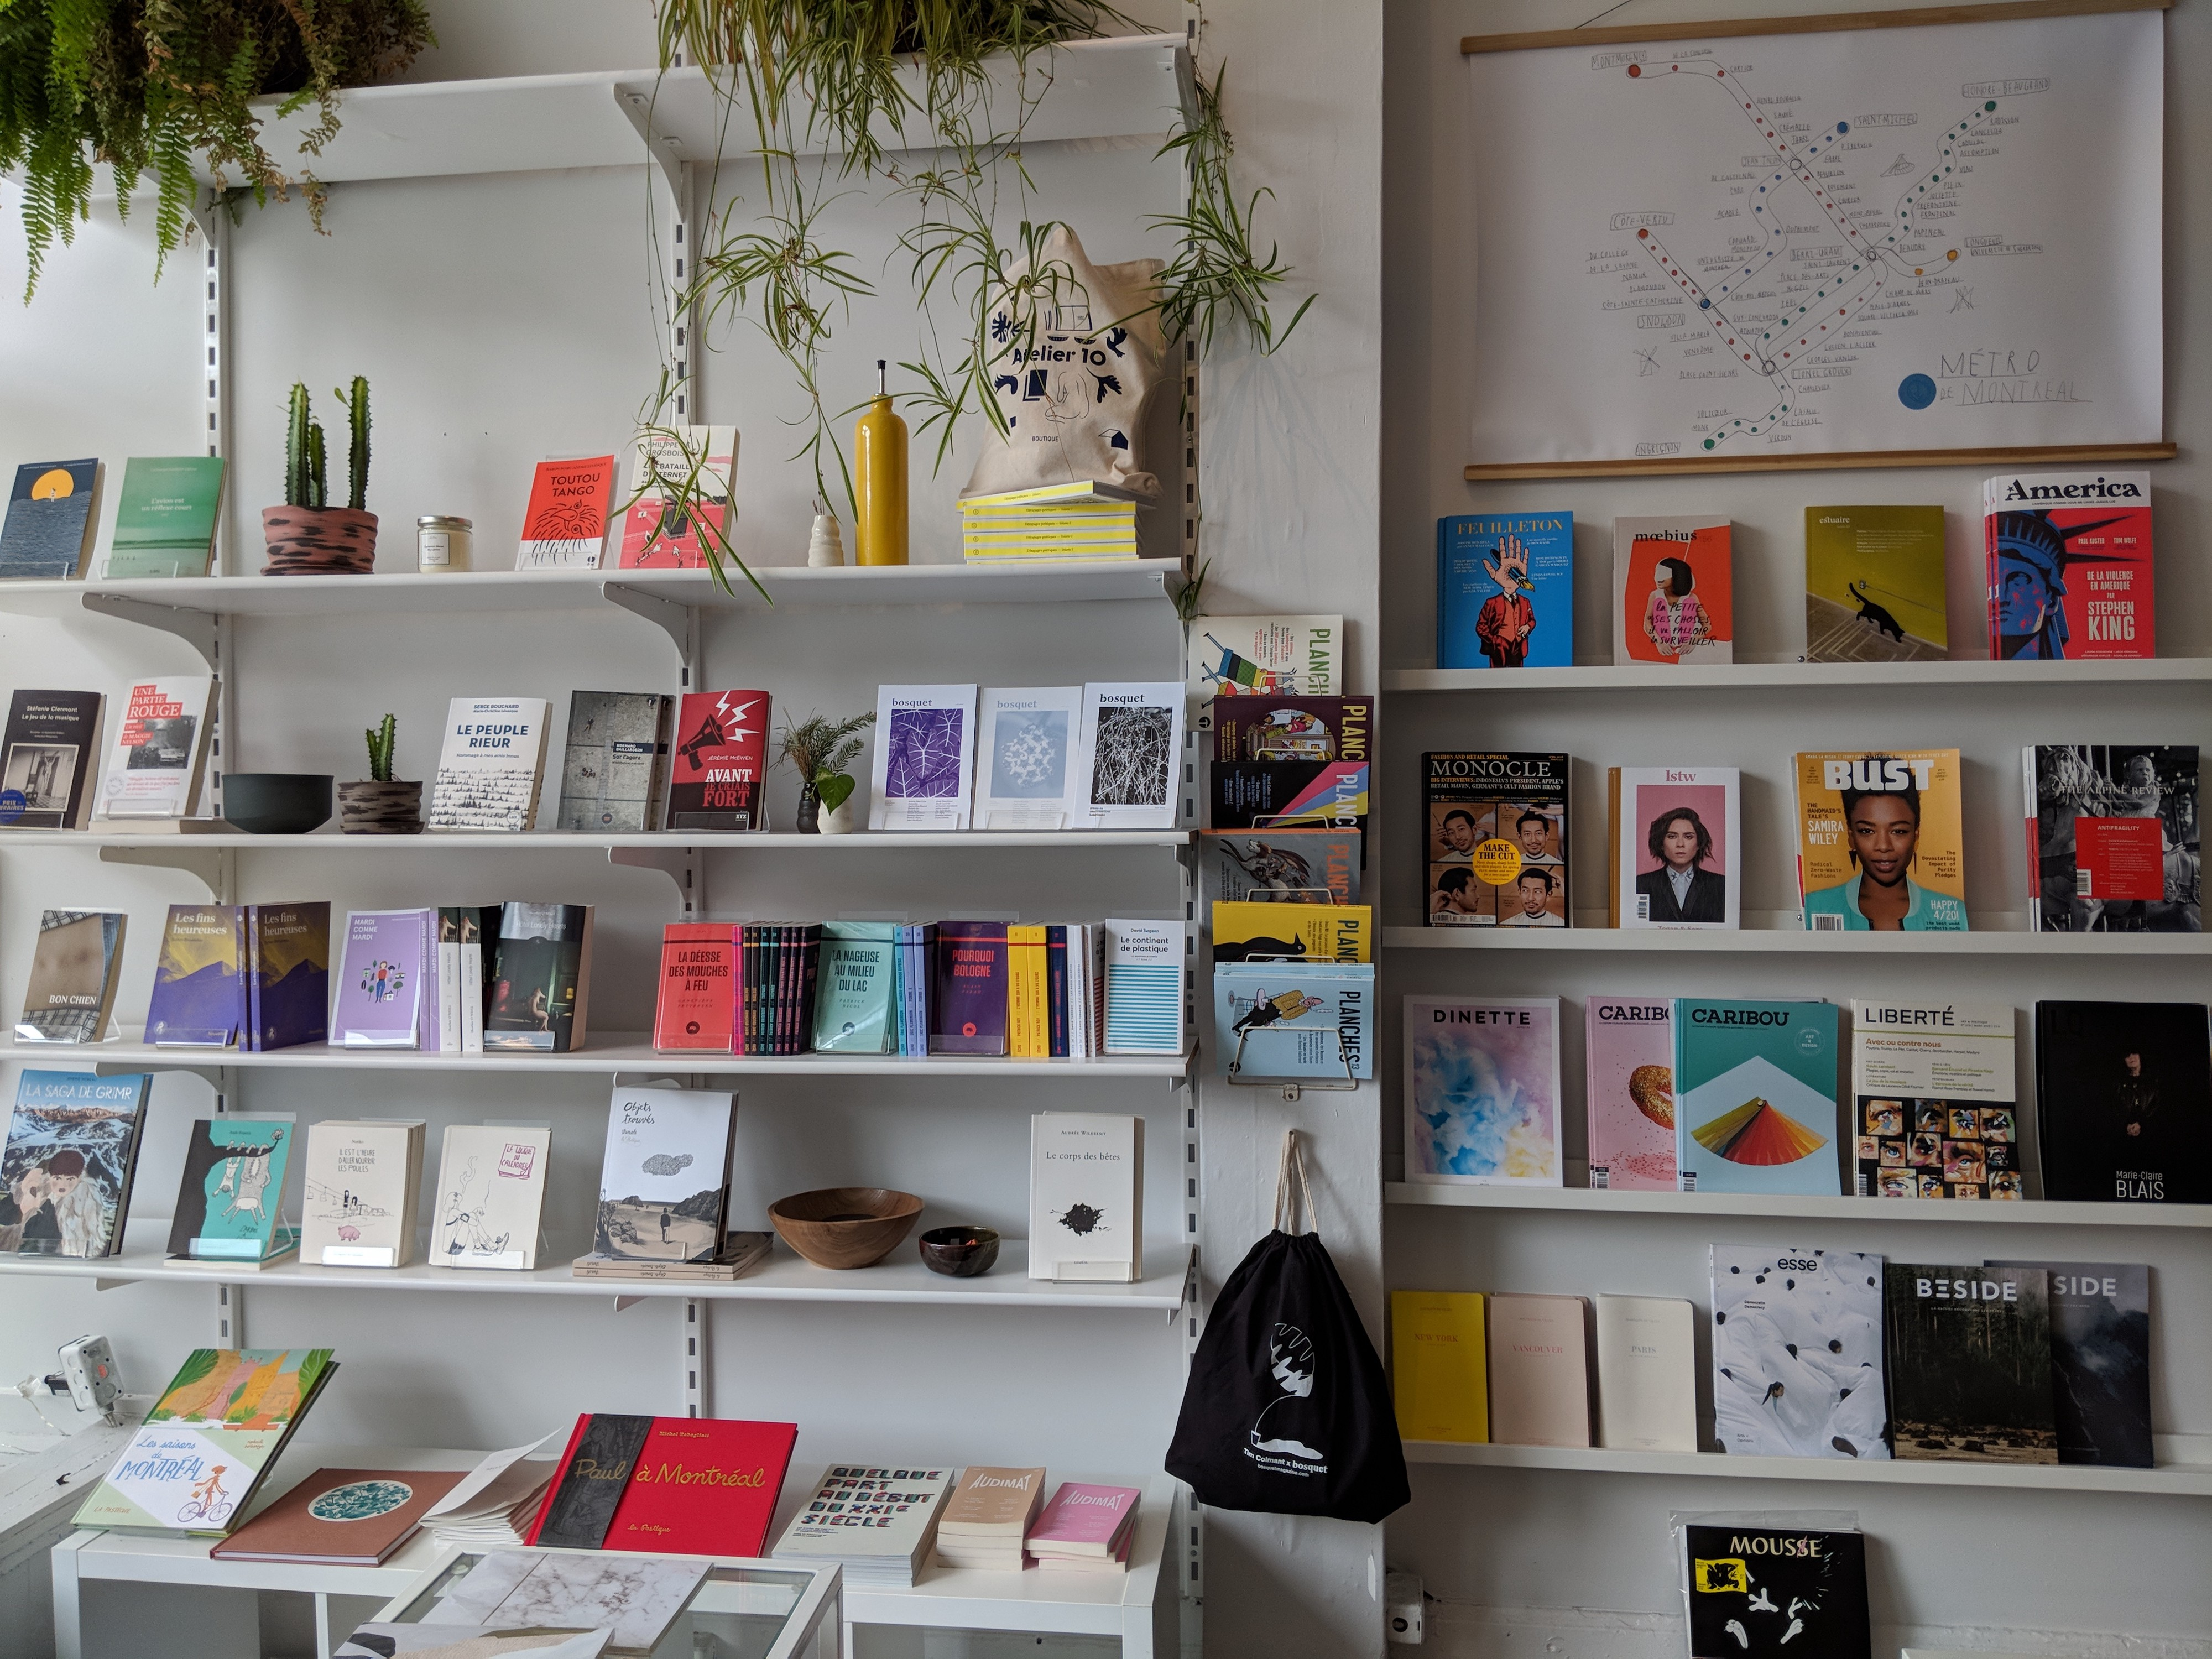 Shelves of books, magazines, and stationary displayed in a bookshop in Montreal.